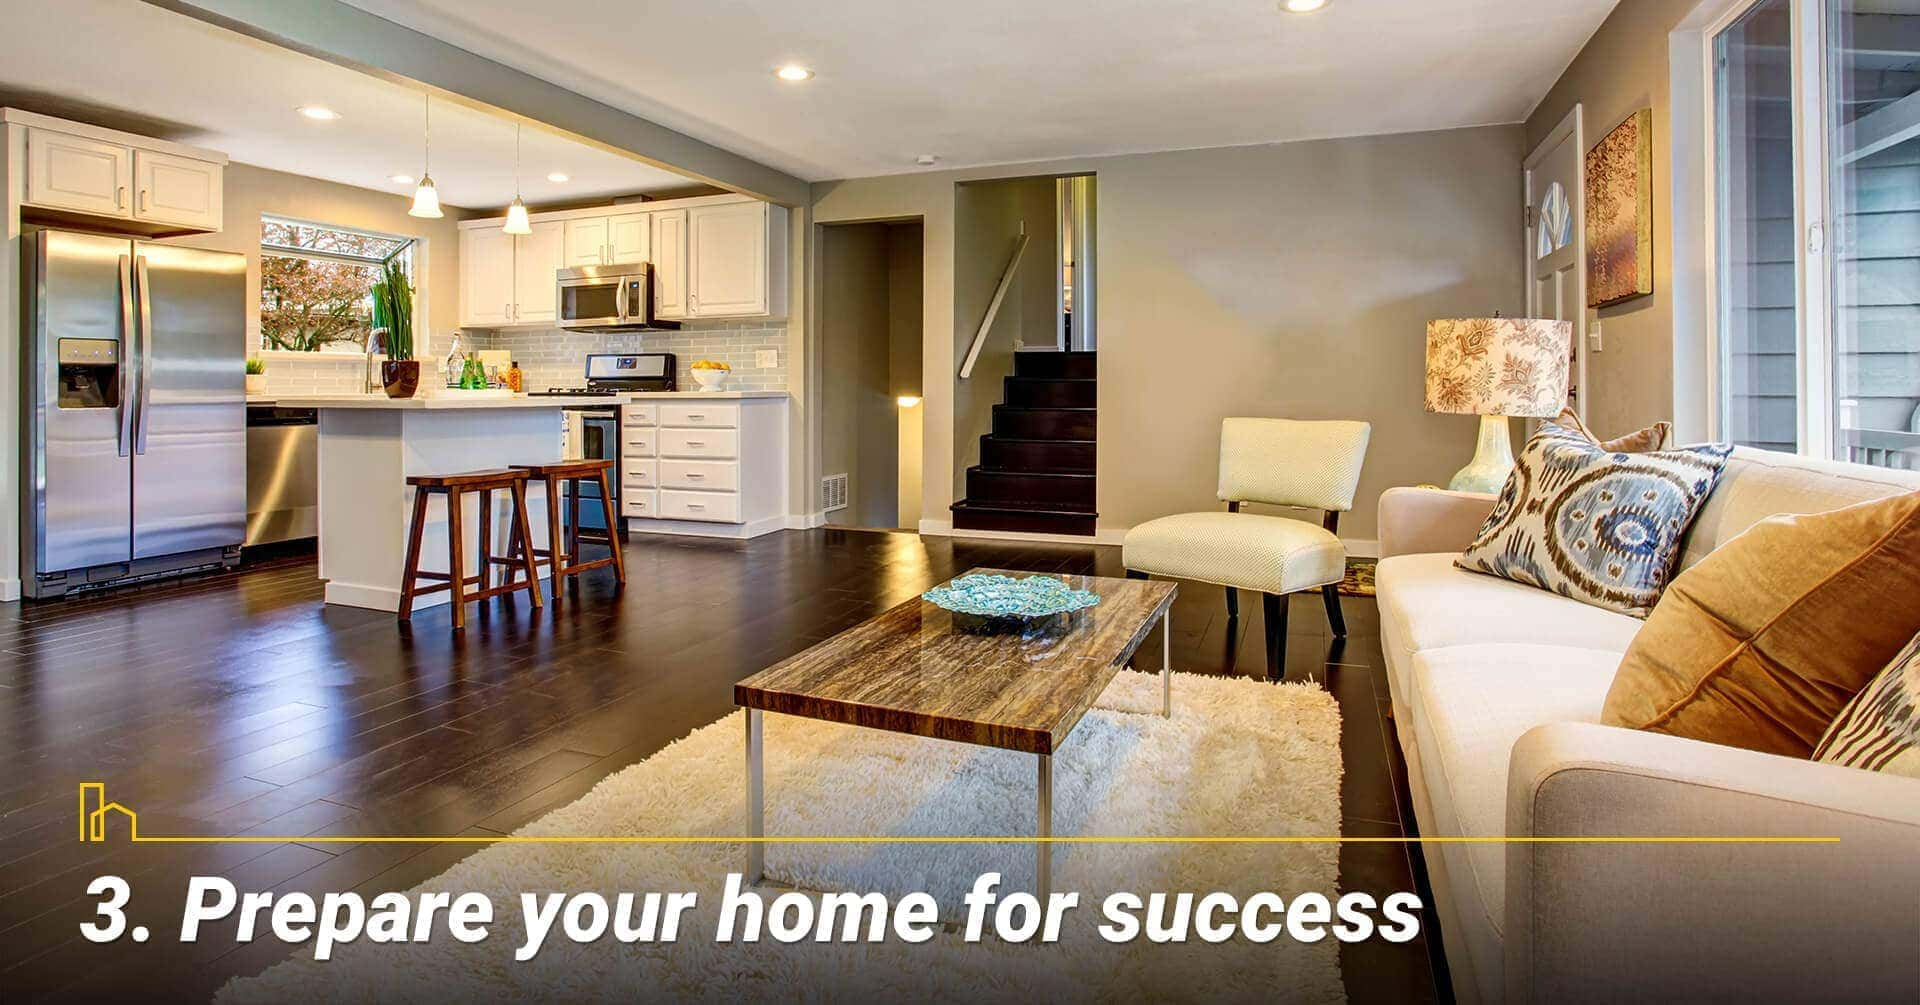 Prepare your home for success